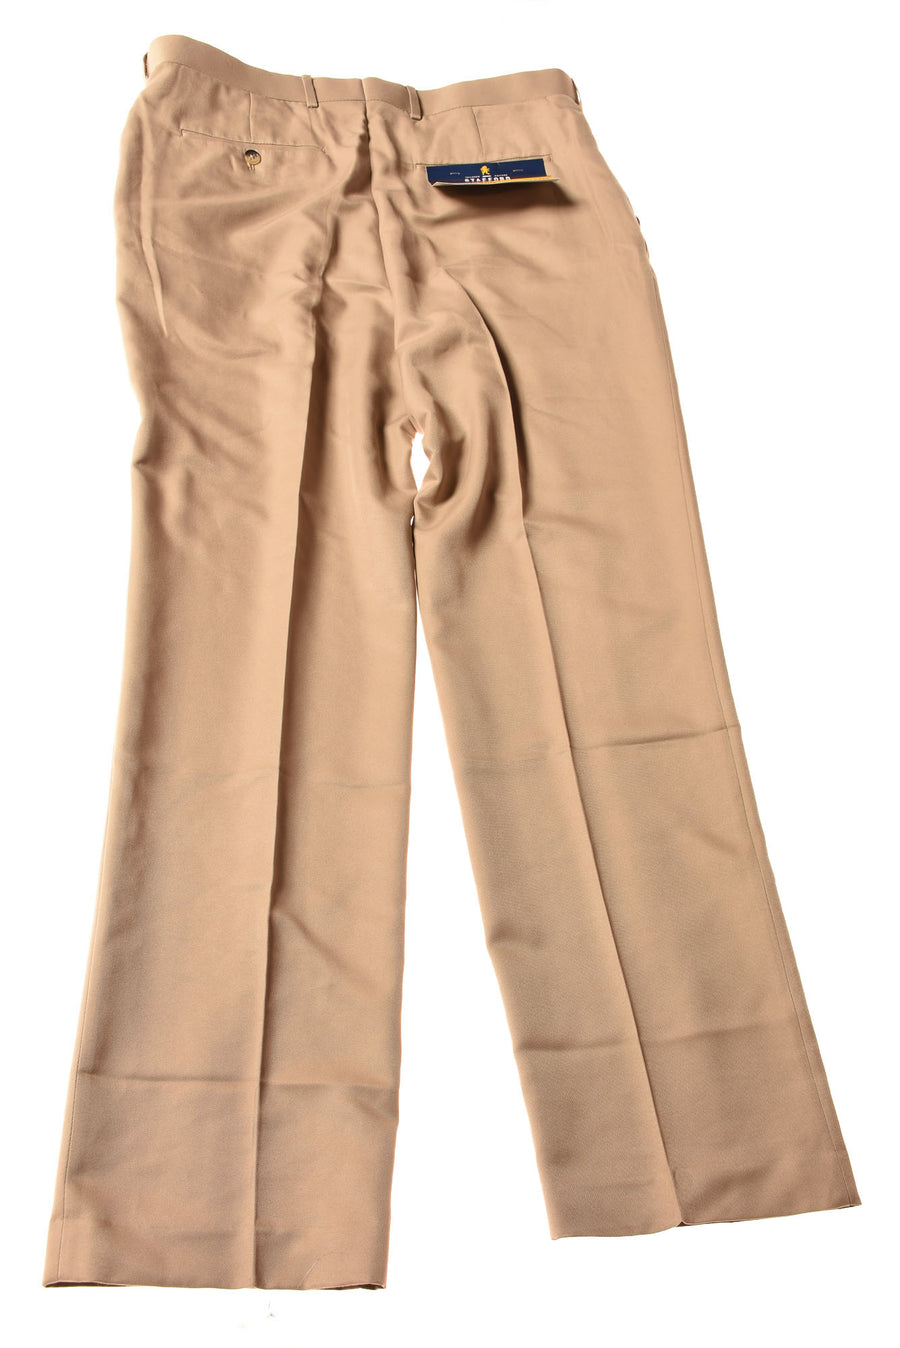 NEW Stafford Men's Slacks 36x34 Khaki